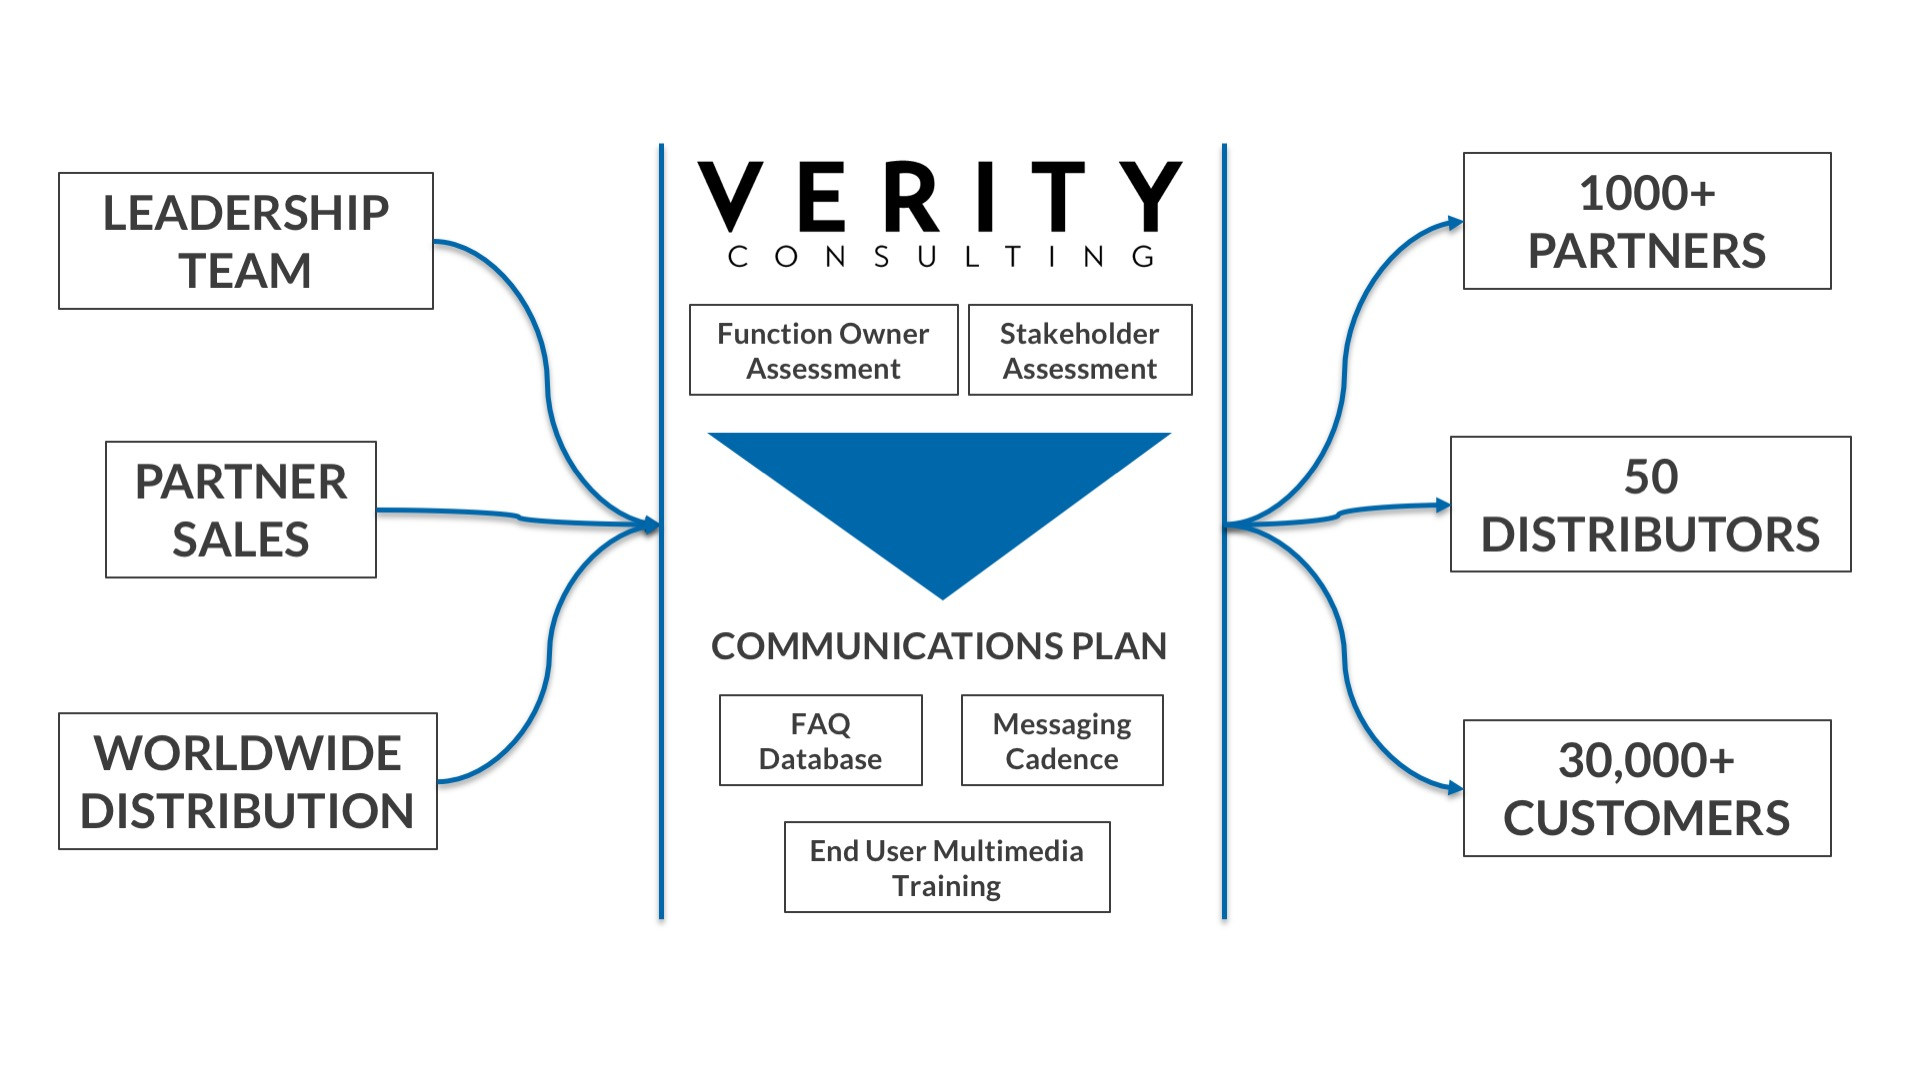 Verity brought structure to the communications